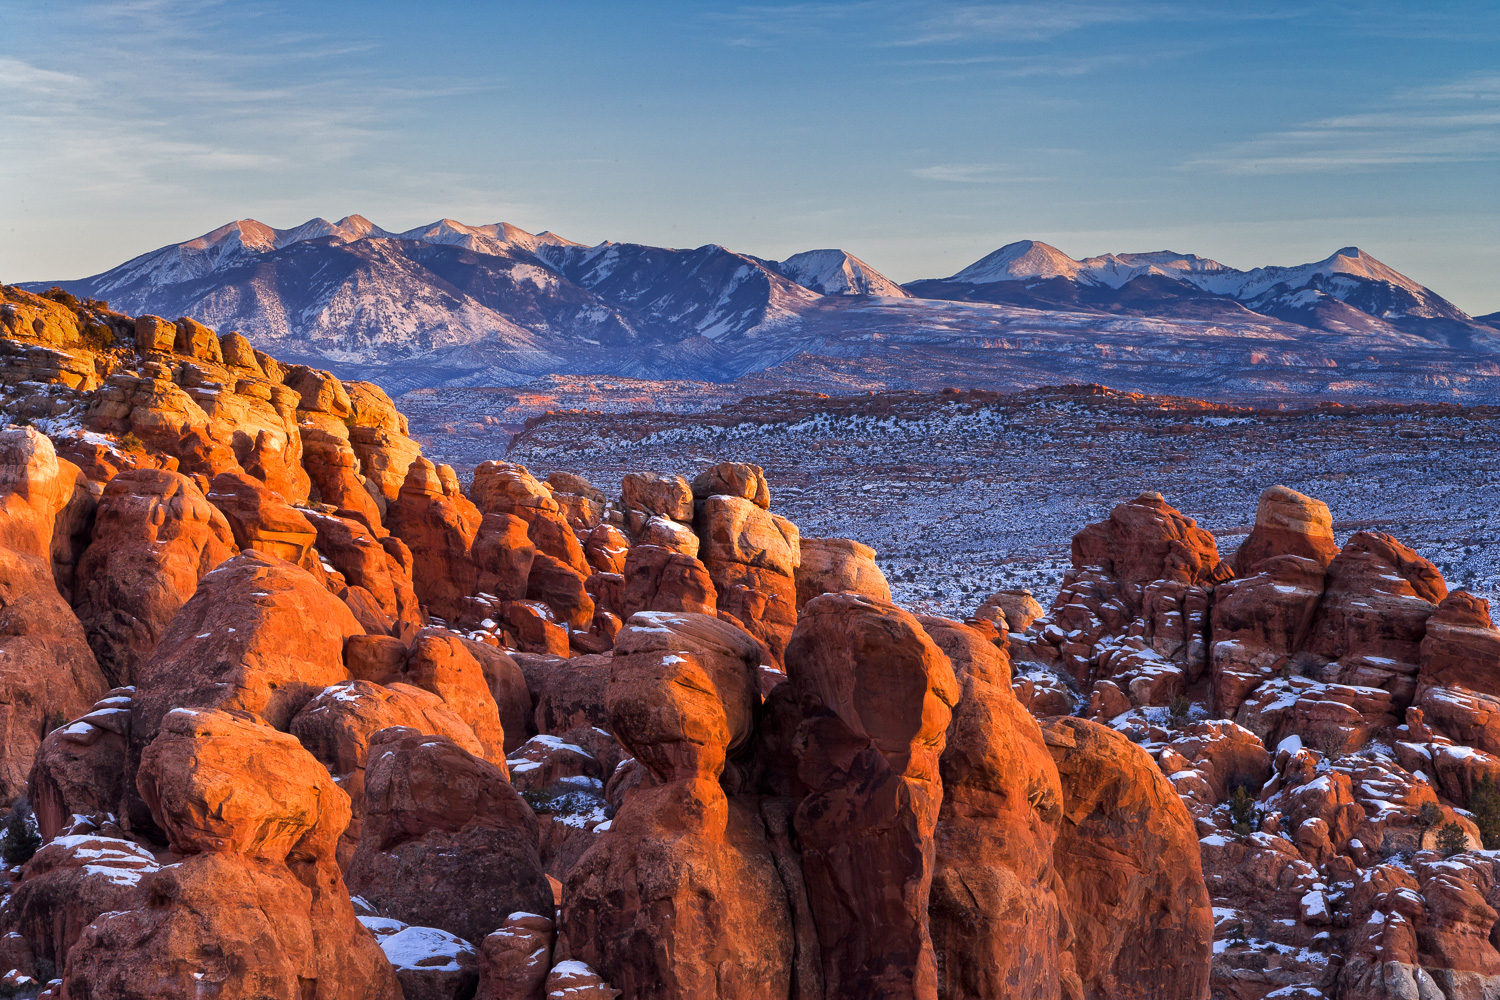 Winter at the Fiery Furnace, Utah